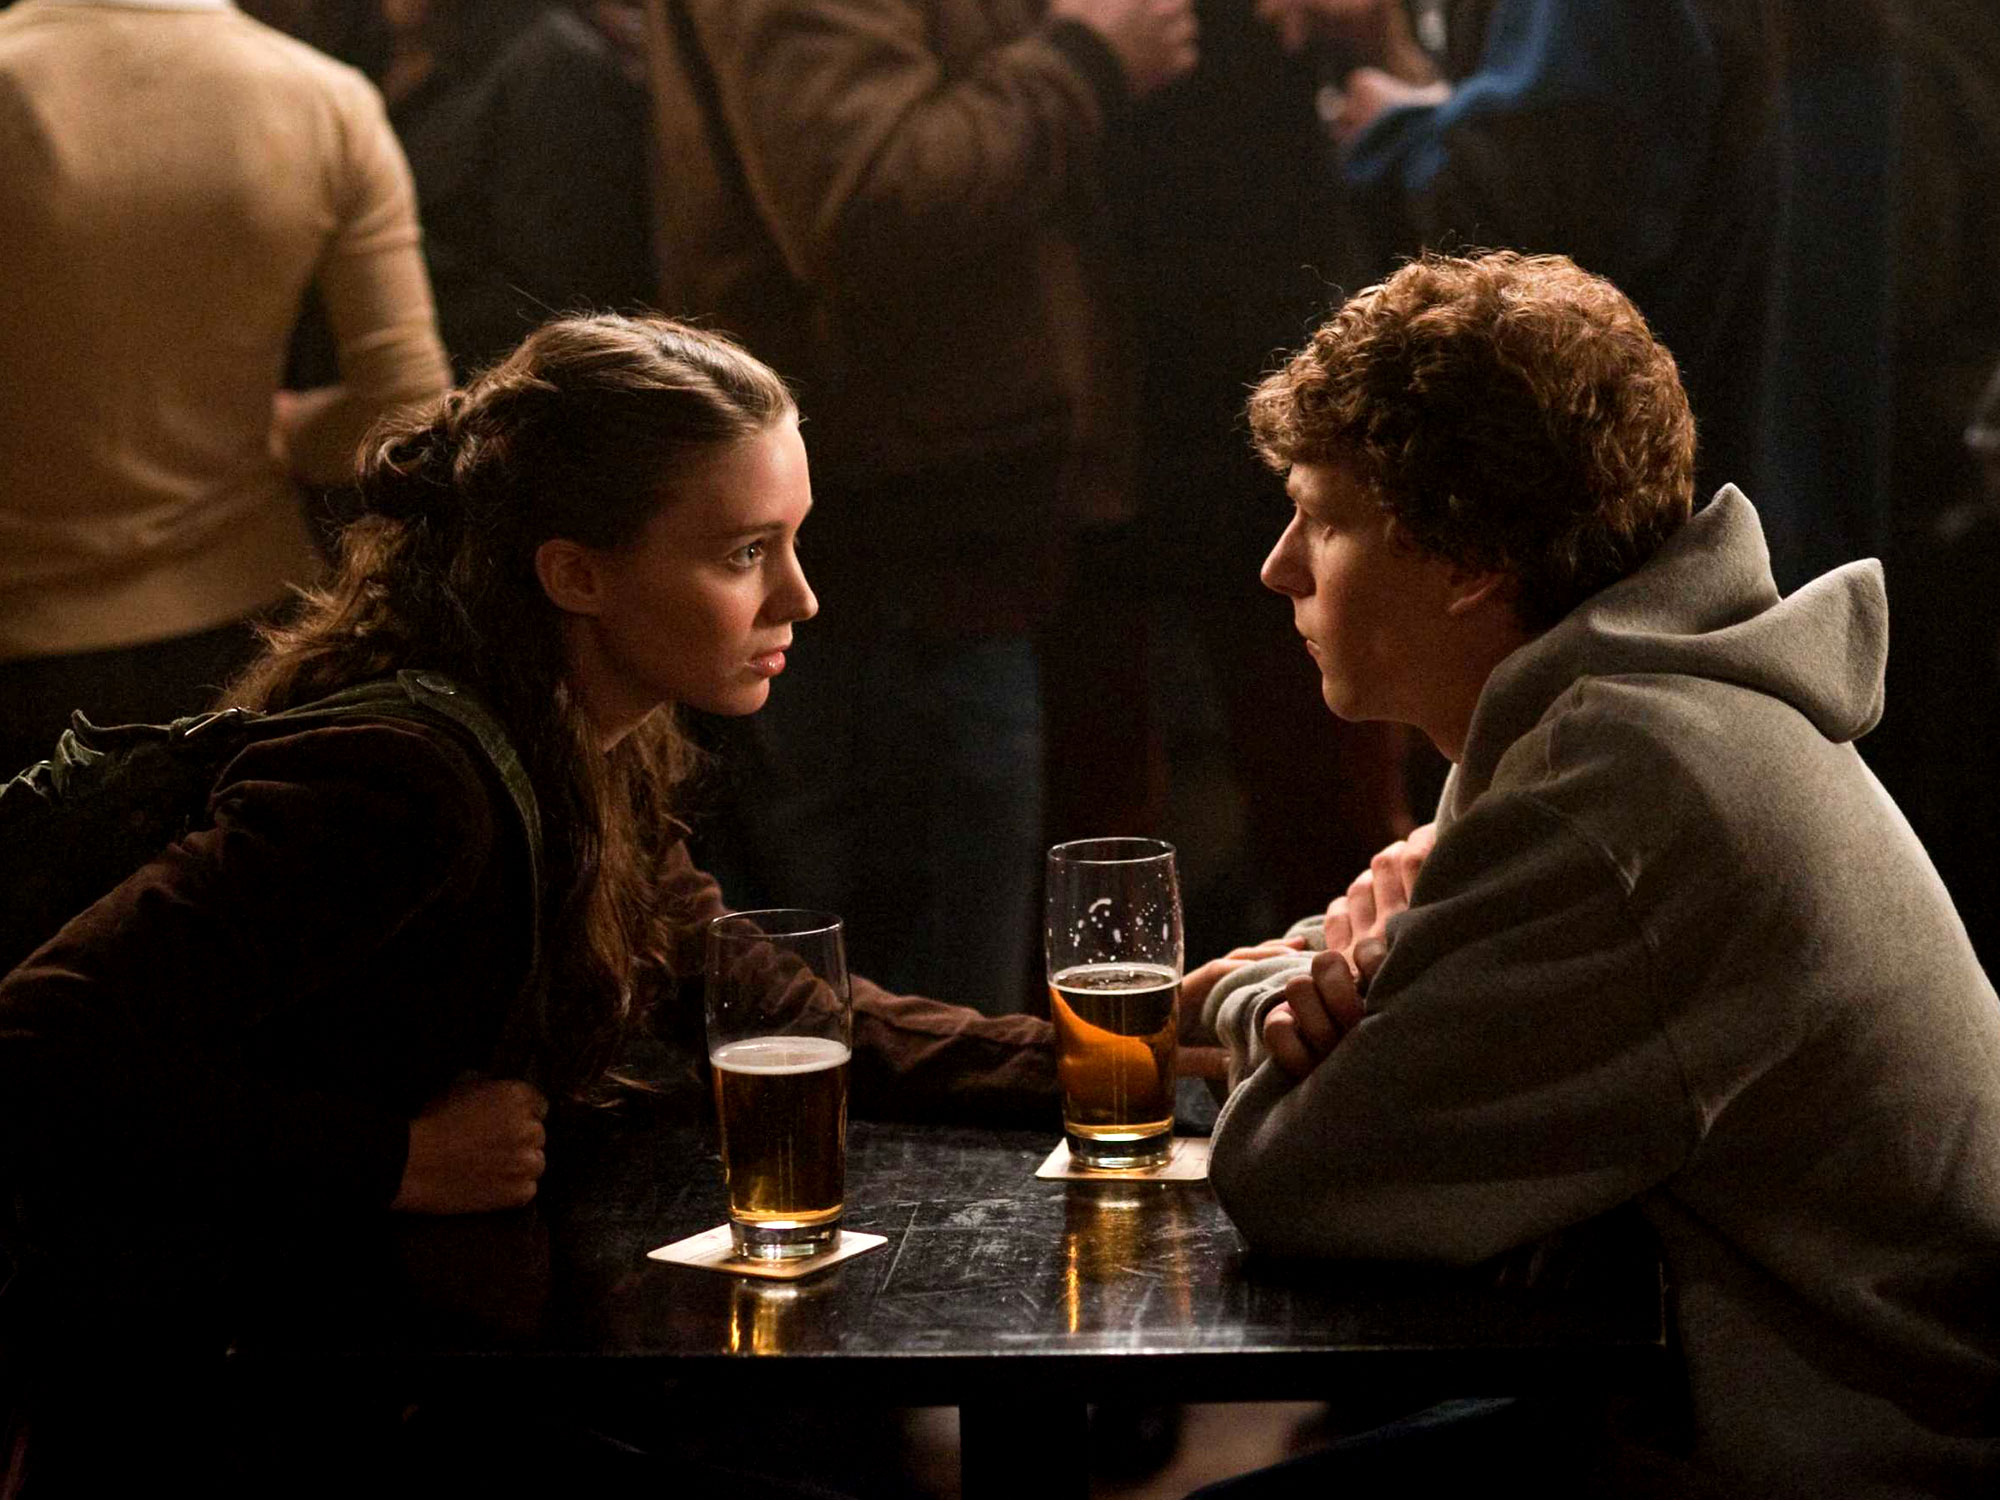 Jesse Eisenberg and Rooney Mara in The Social Network